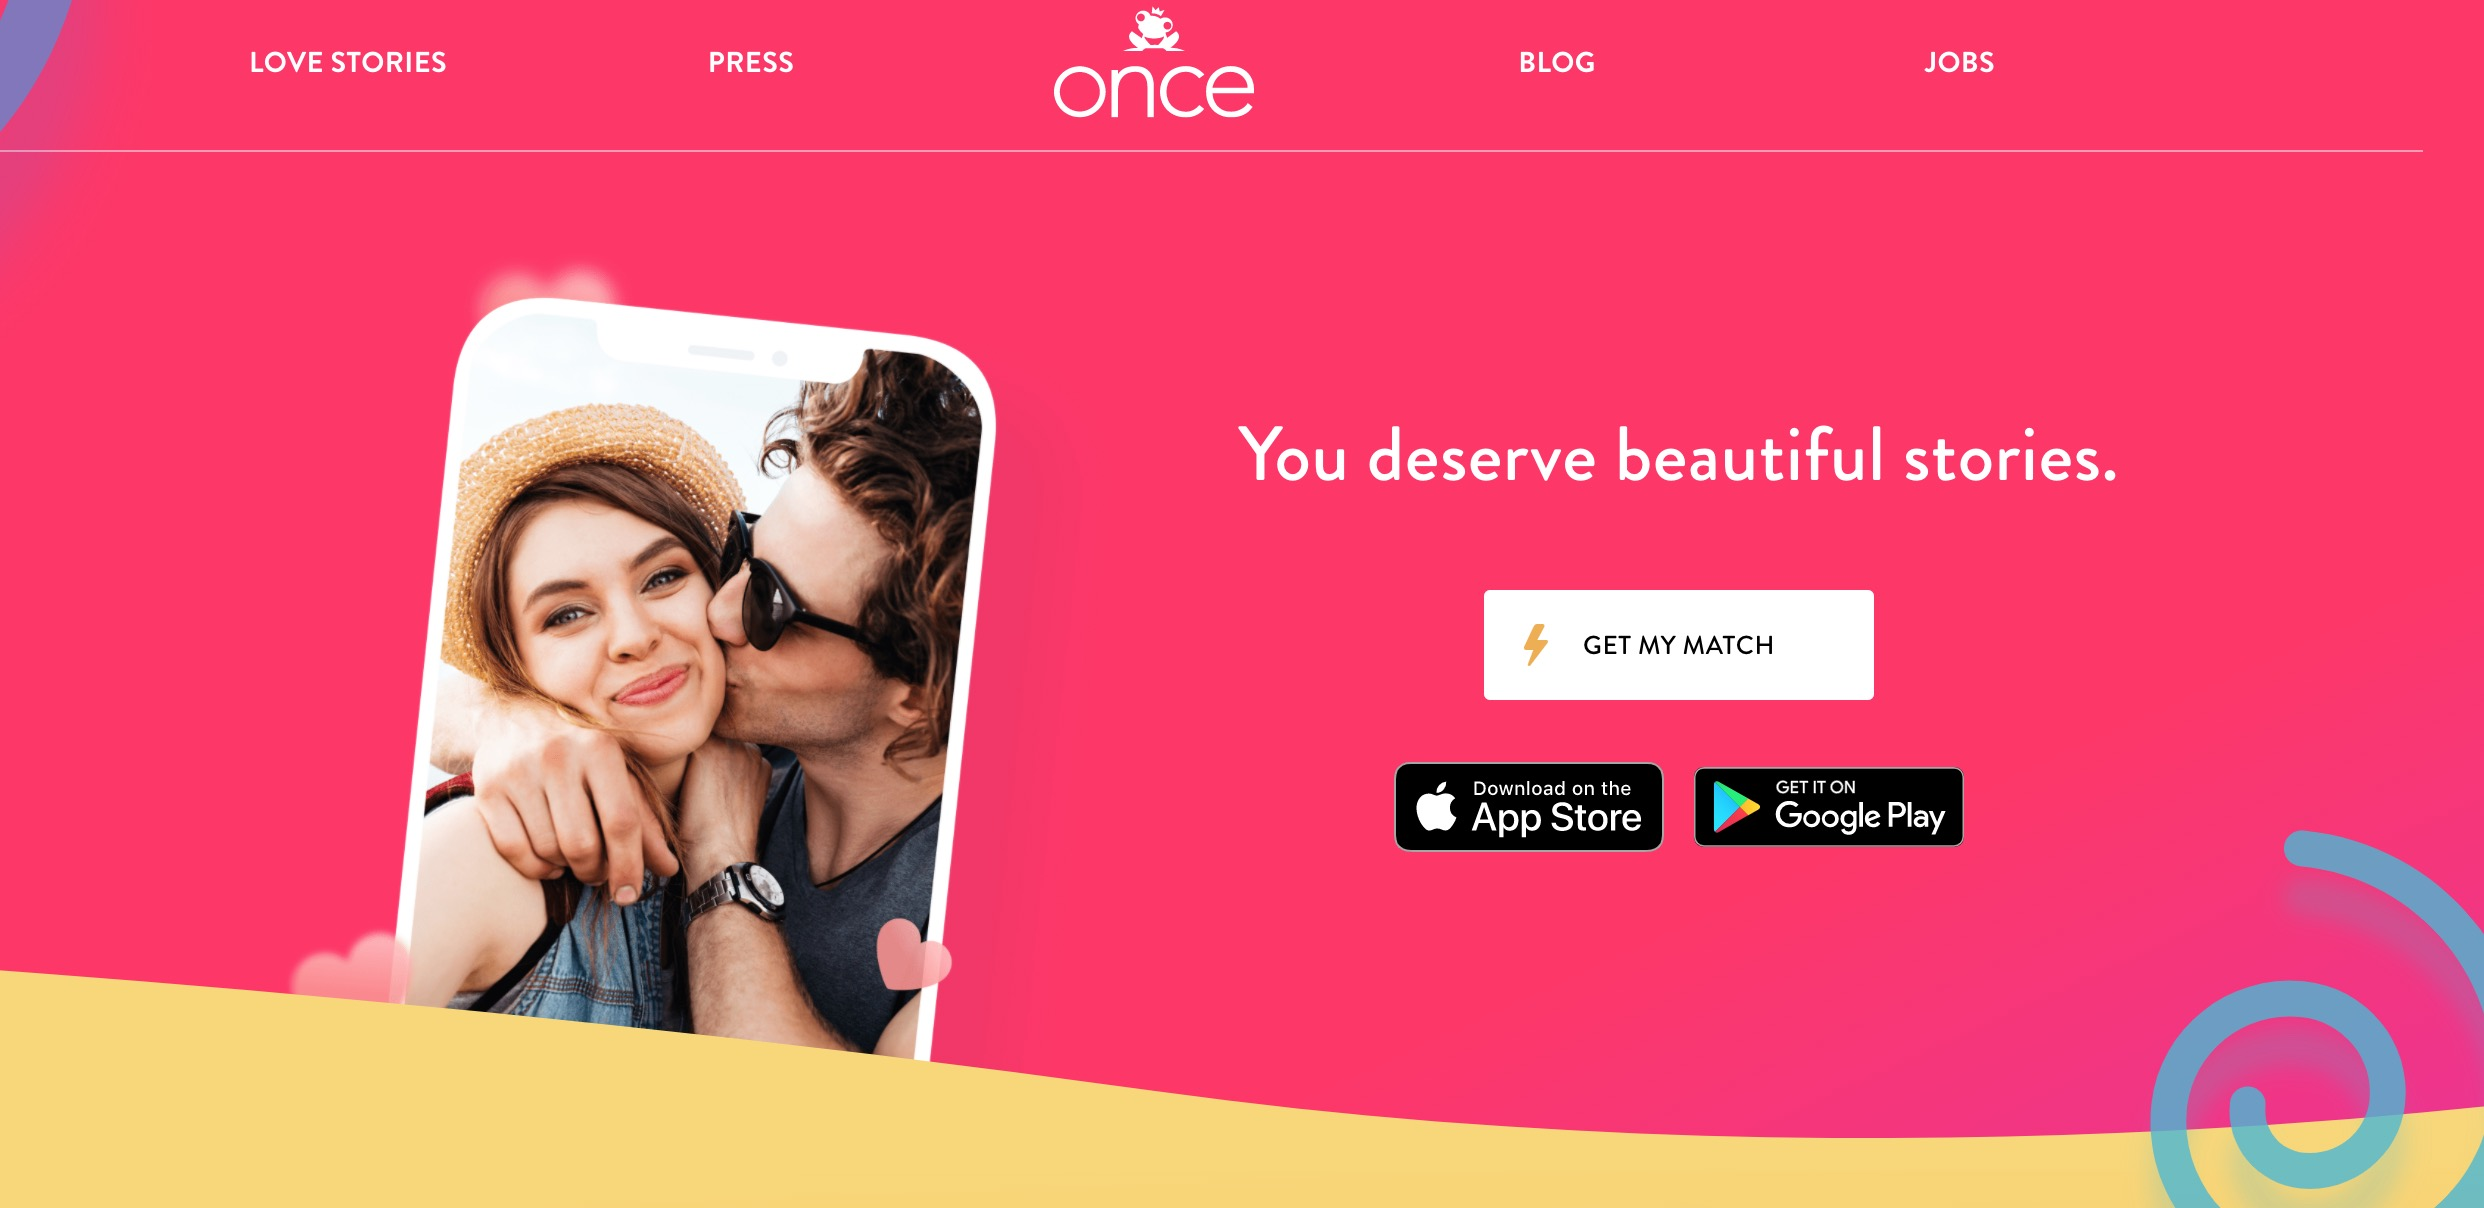 Once main page